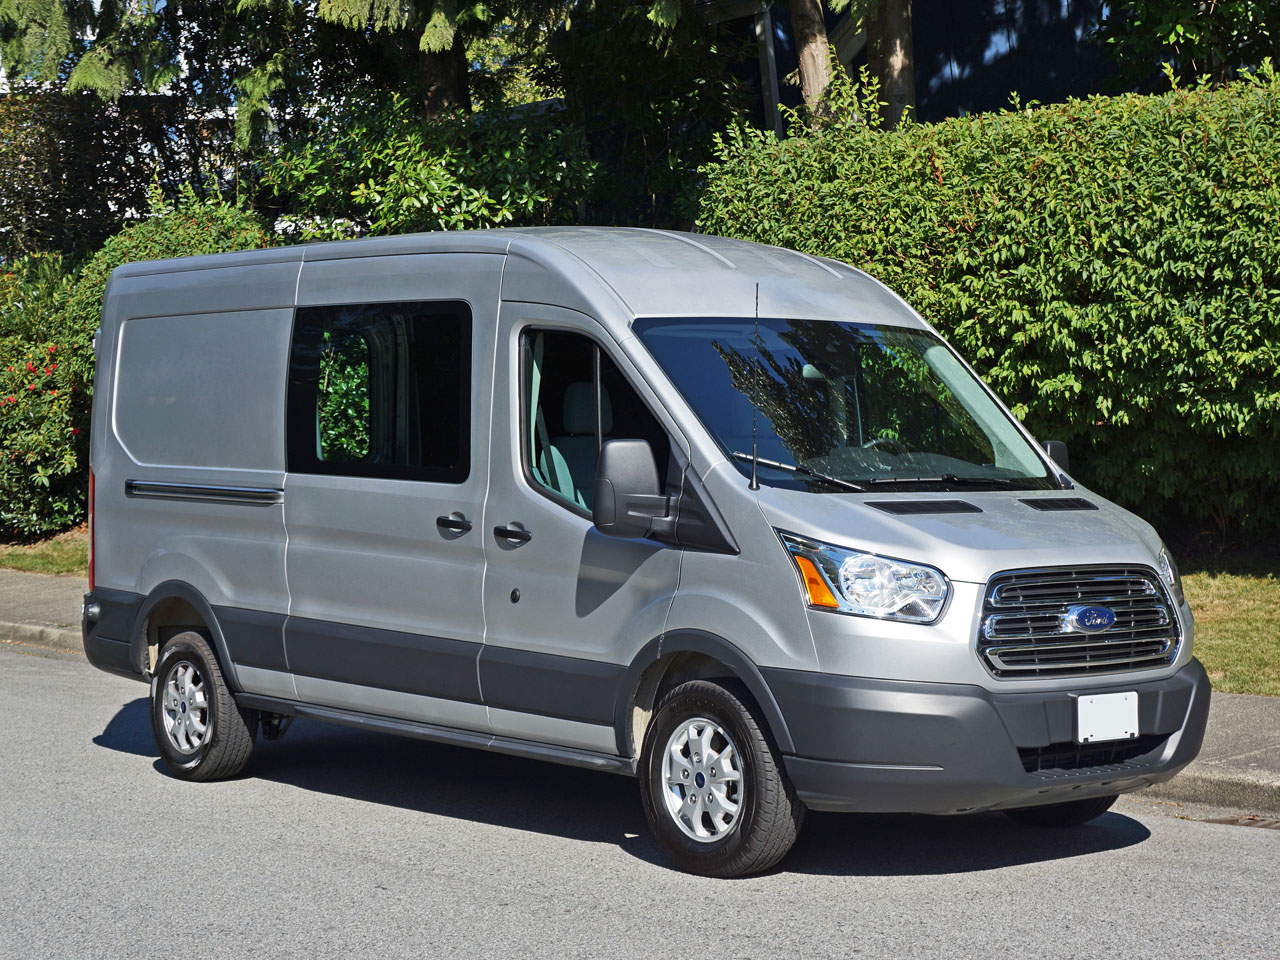 daily age drive debuts new ford front end hauler the van transit